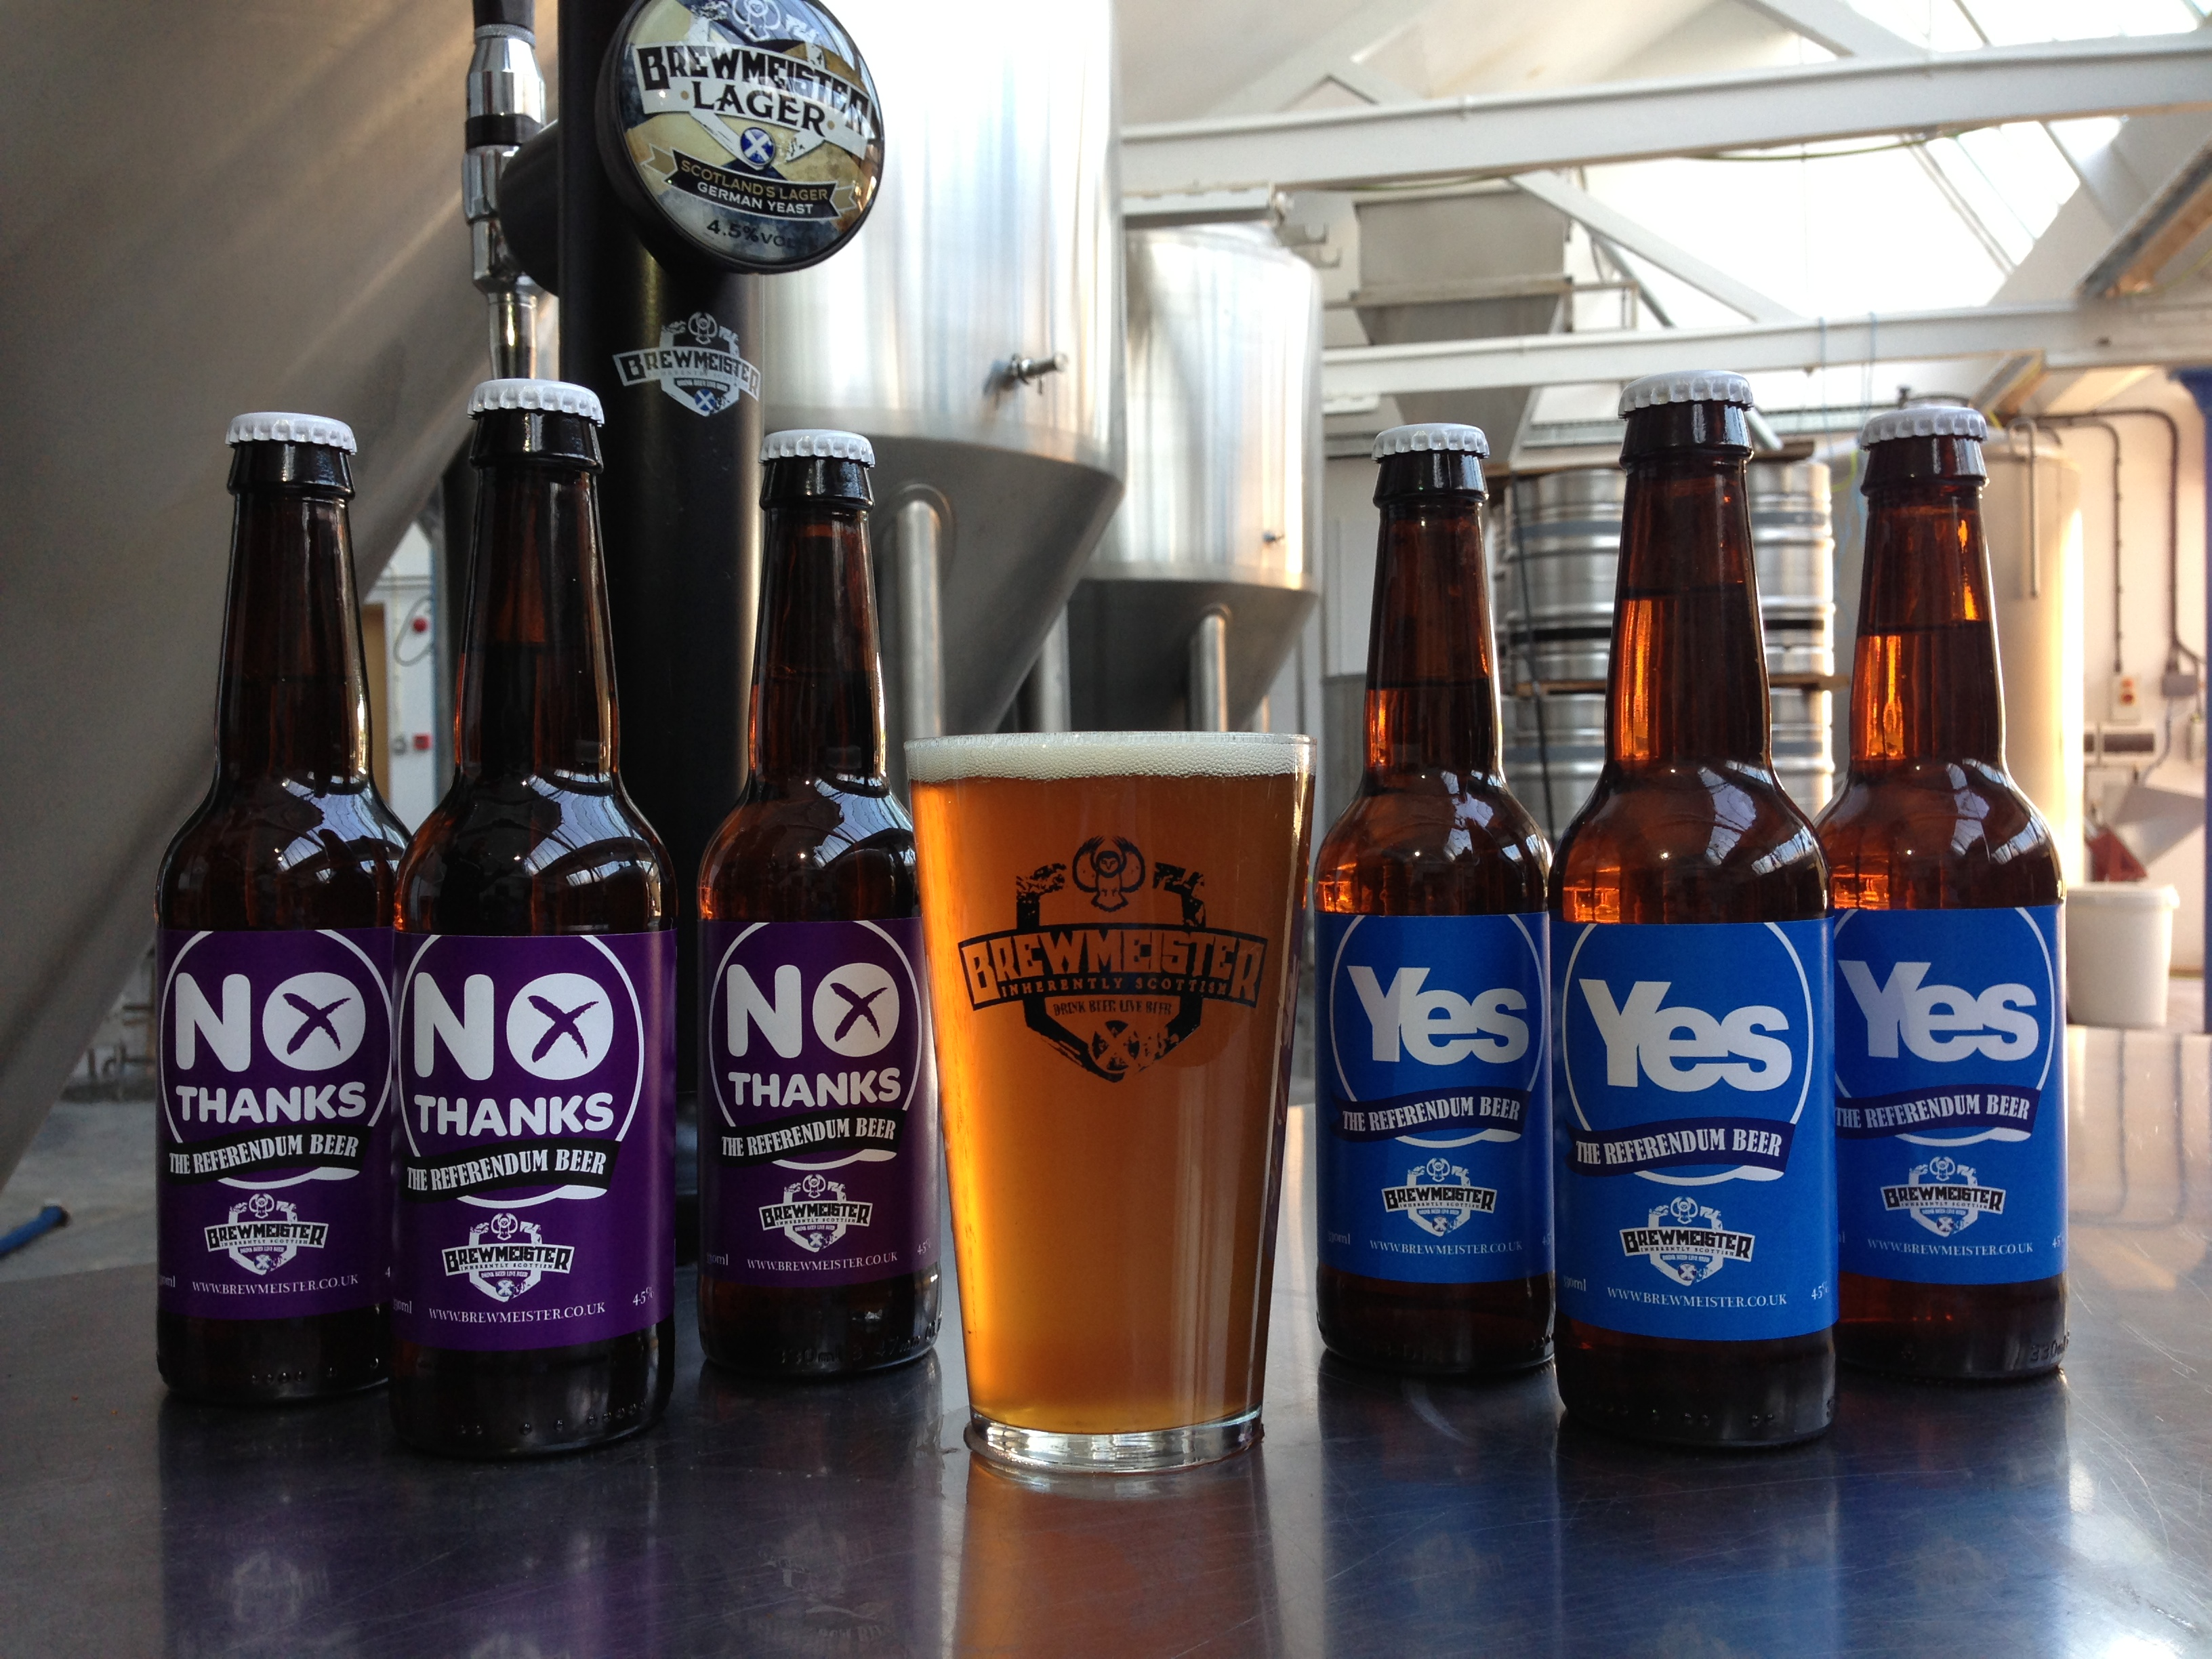 Brewmeister have launched a range of Yes and No beers ahead of Indyref